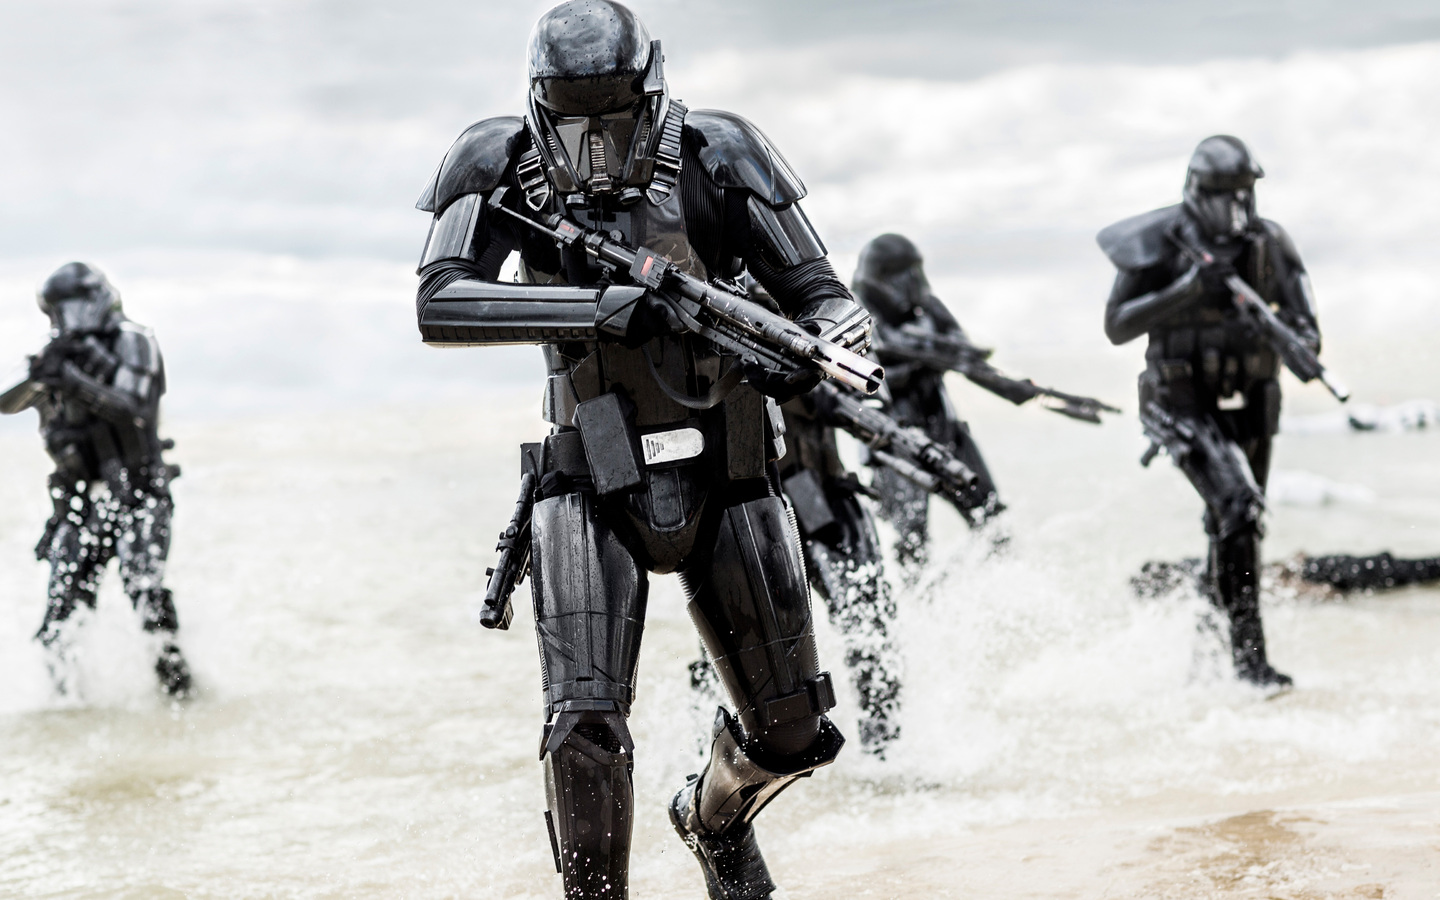 rogue-one-a-star-wars-story-death-troopers-5k-new.jpg